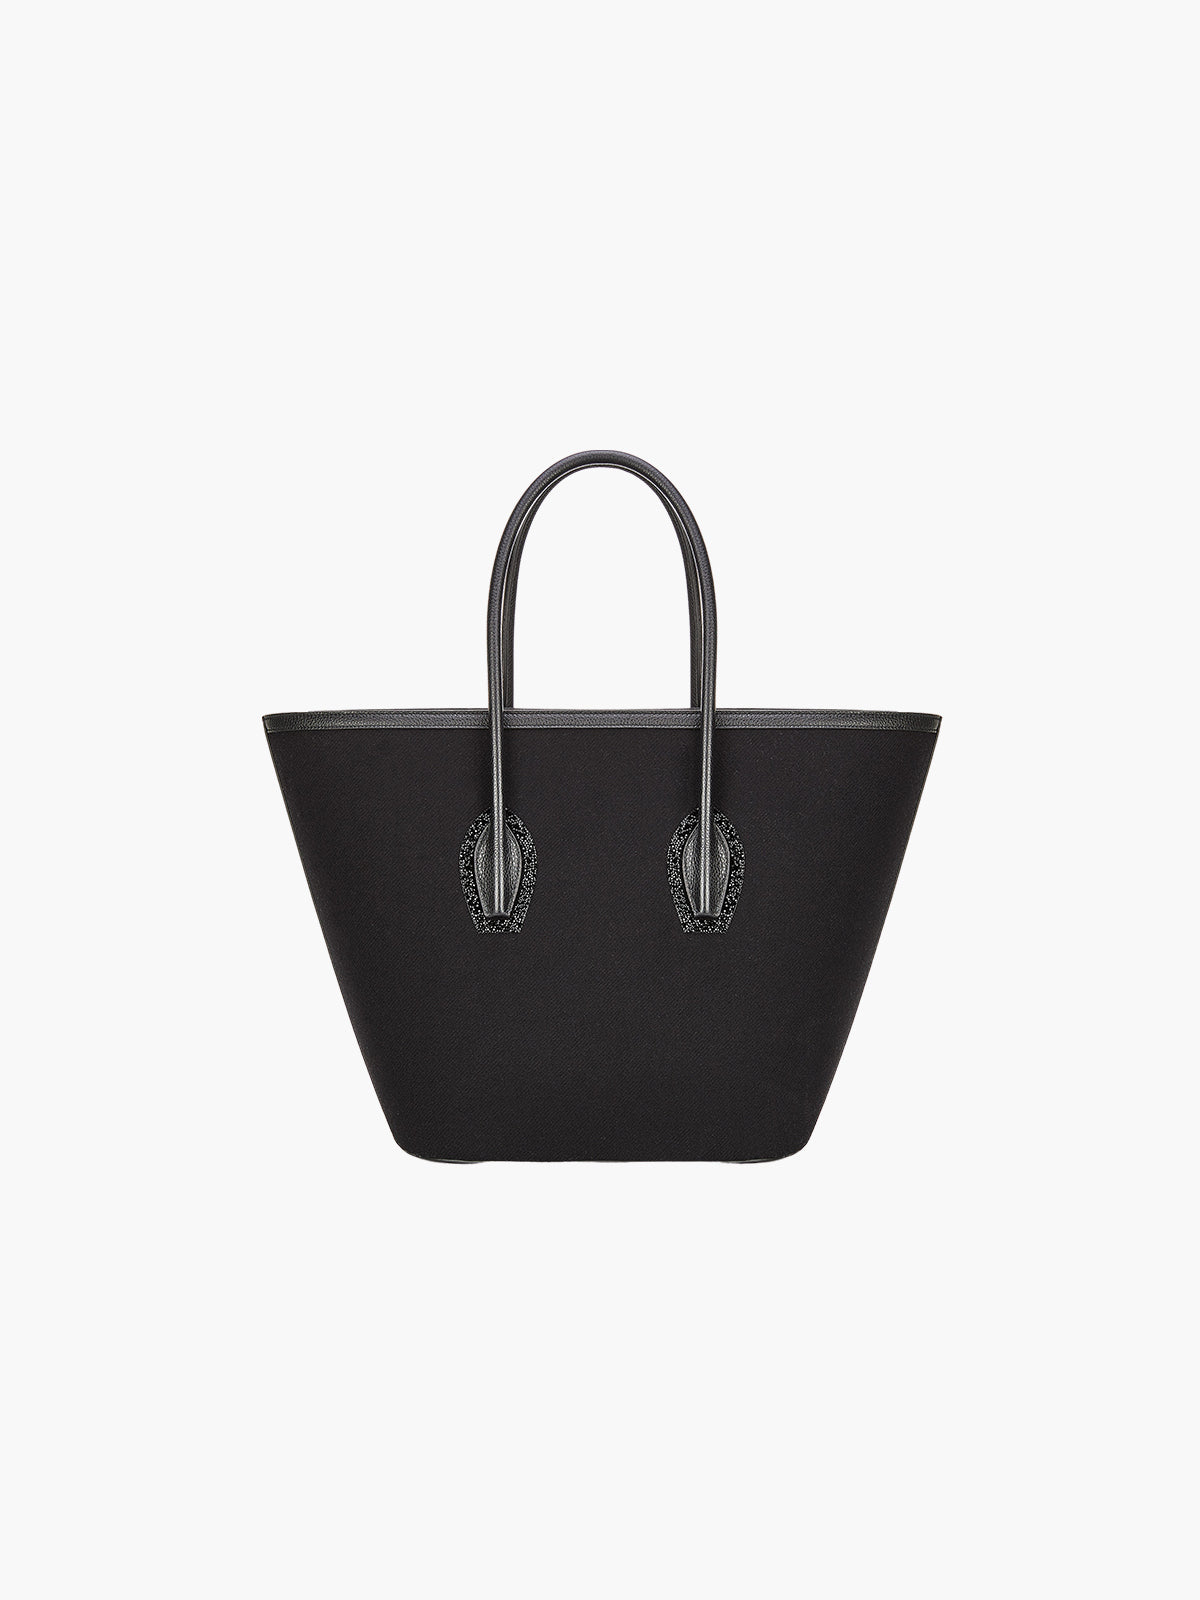 Porter Bag | Black Lana